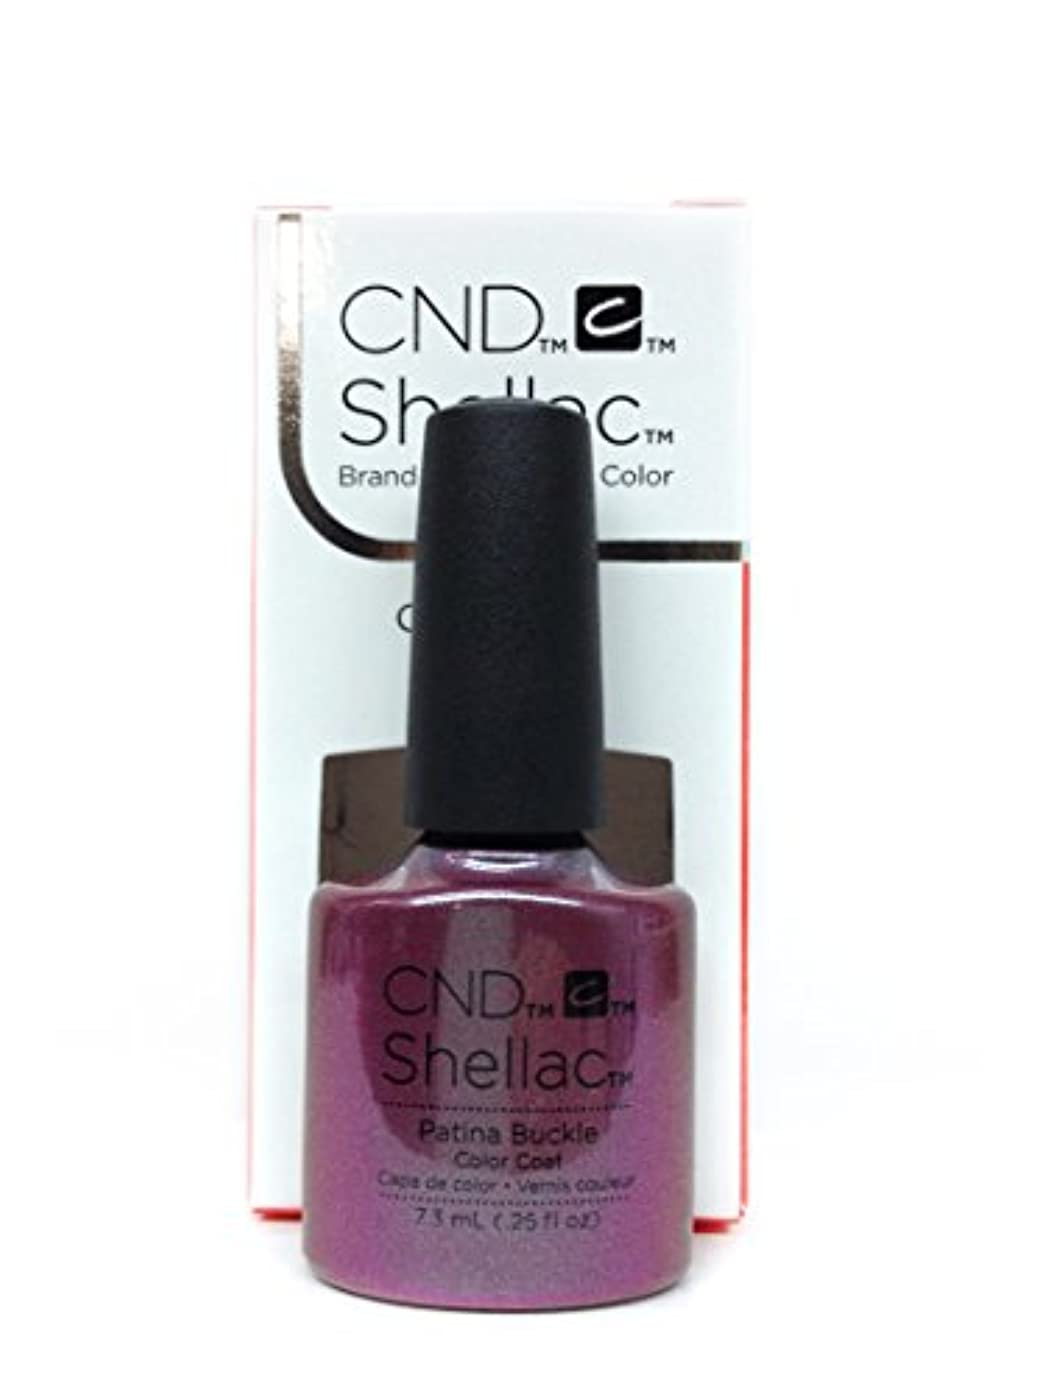 一過性請願者降ろすCND Shellac Gel Polish - Patina Buckle - 0.25oz / 7.3ml